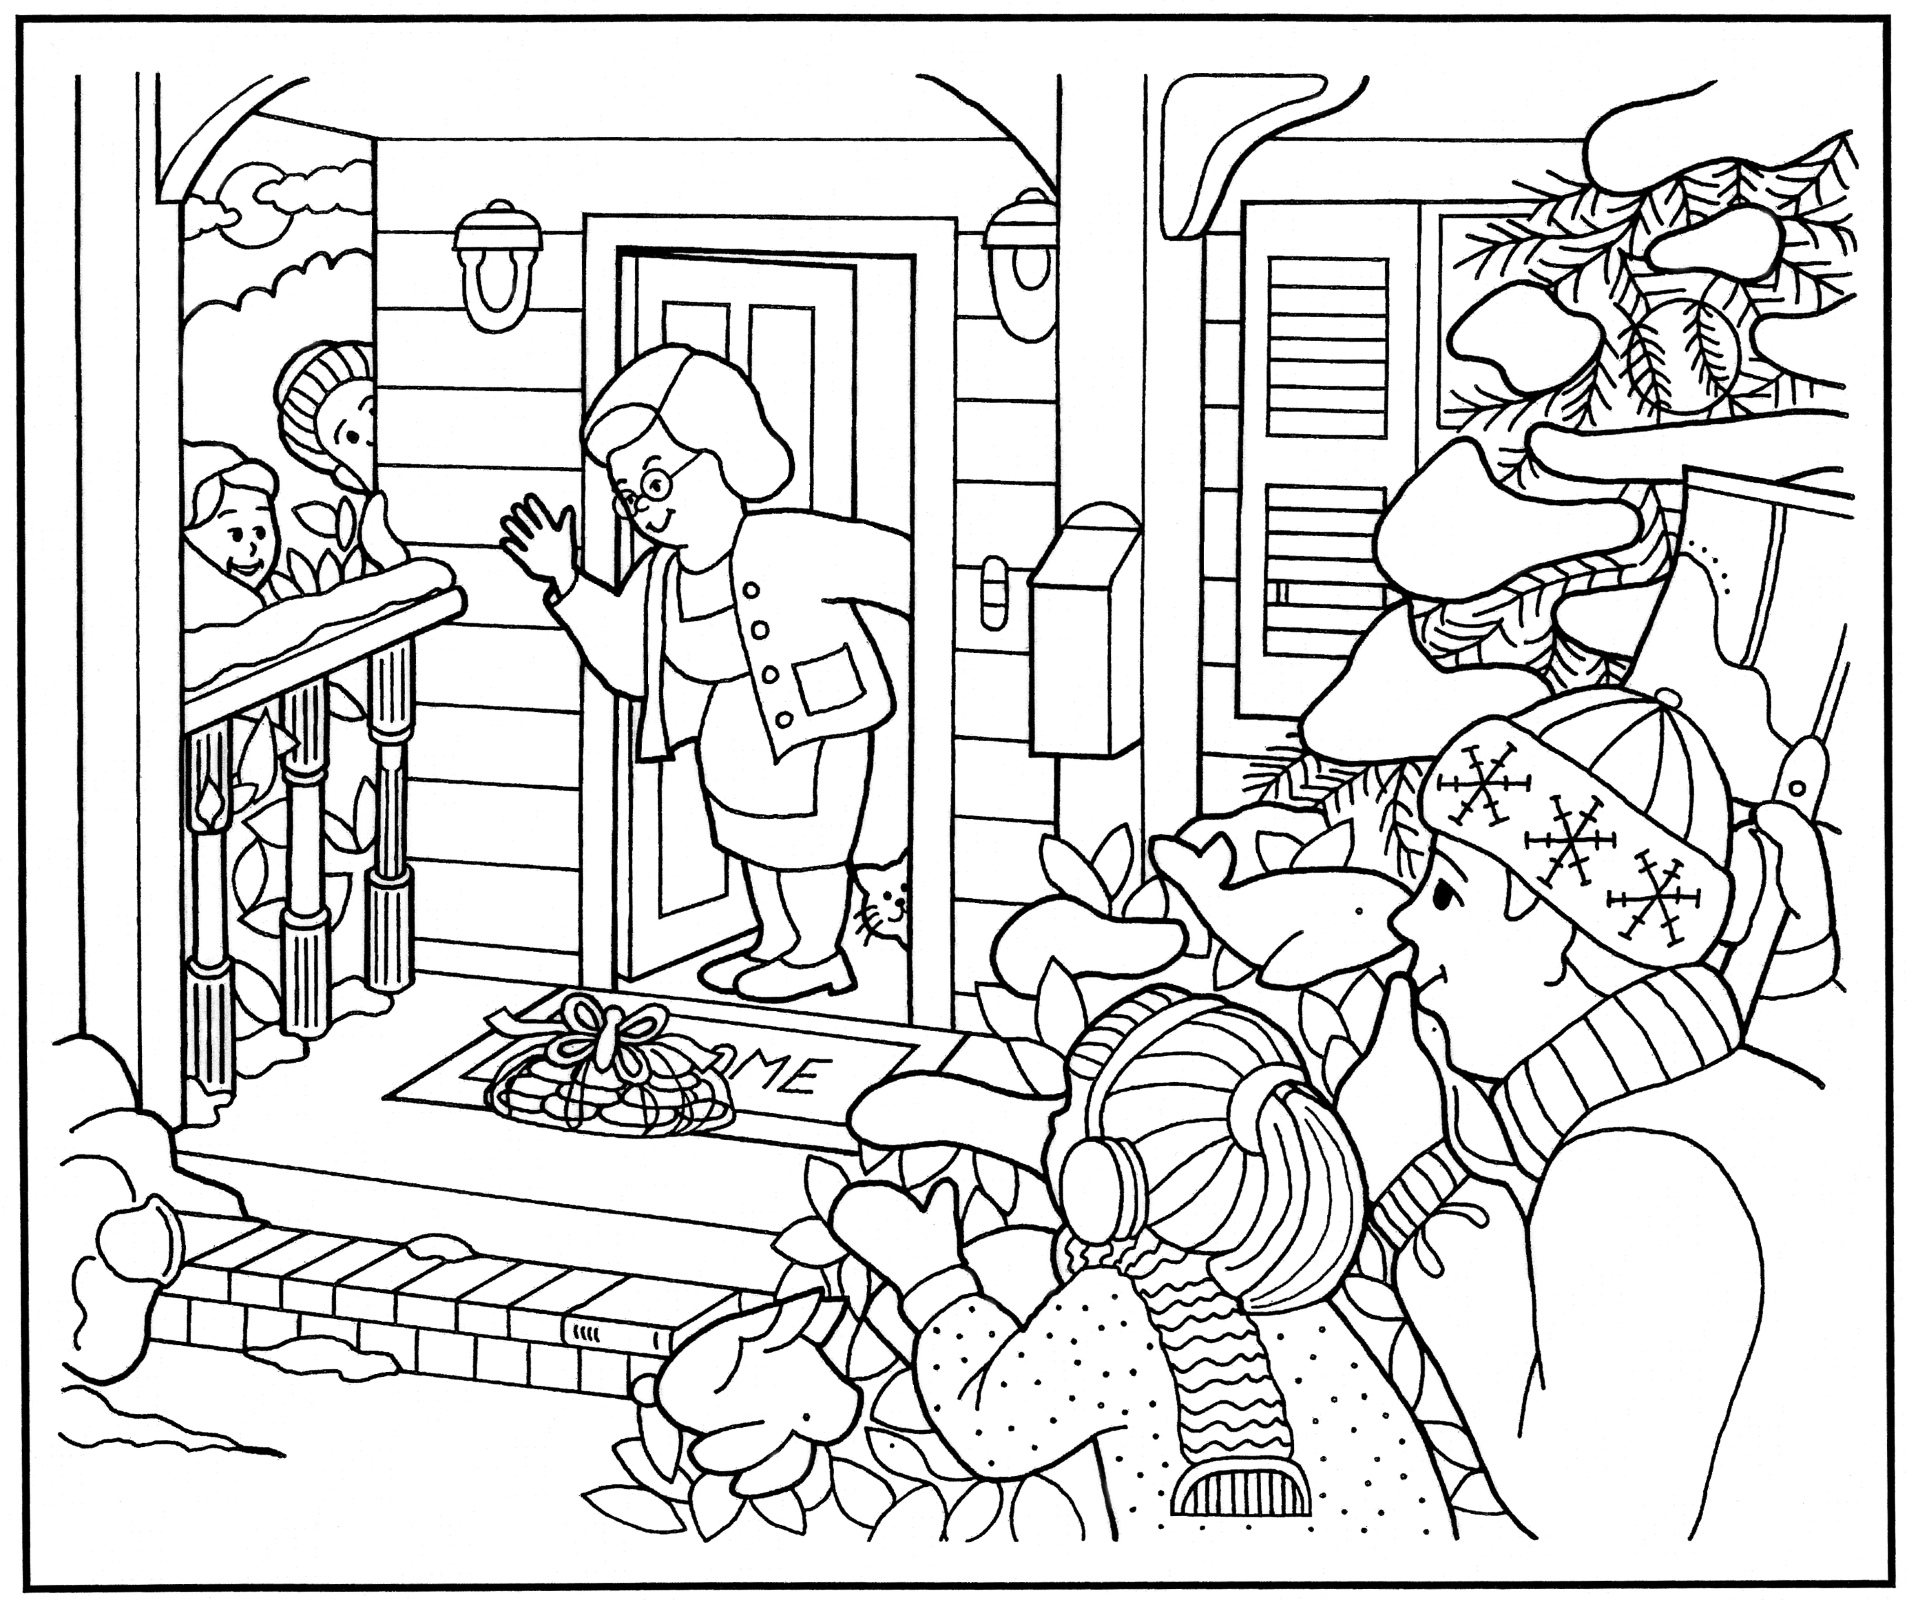 Christmas Coloring Pages For Elderly With Finding Cookies